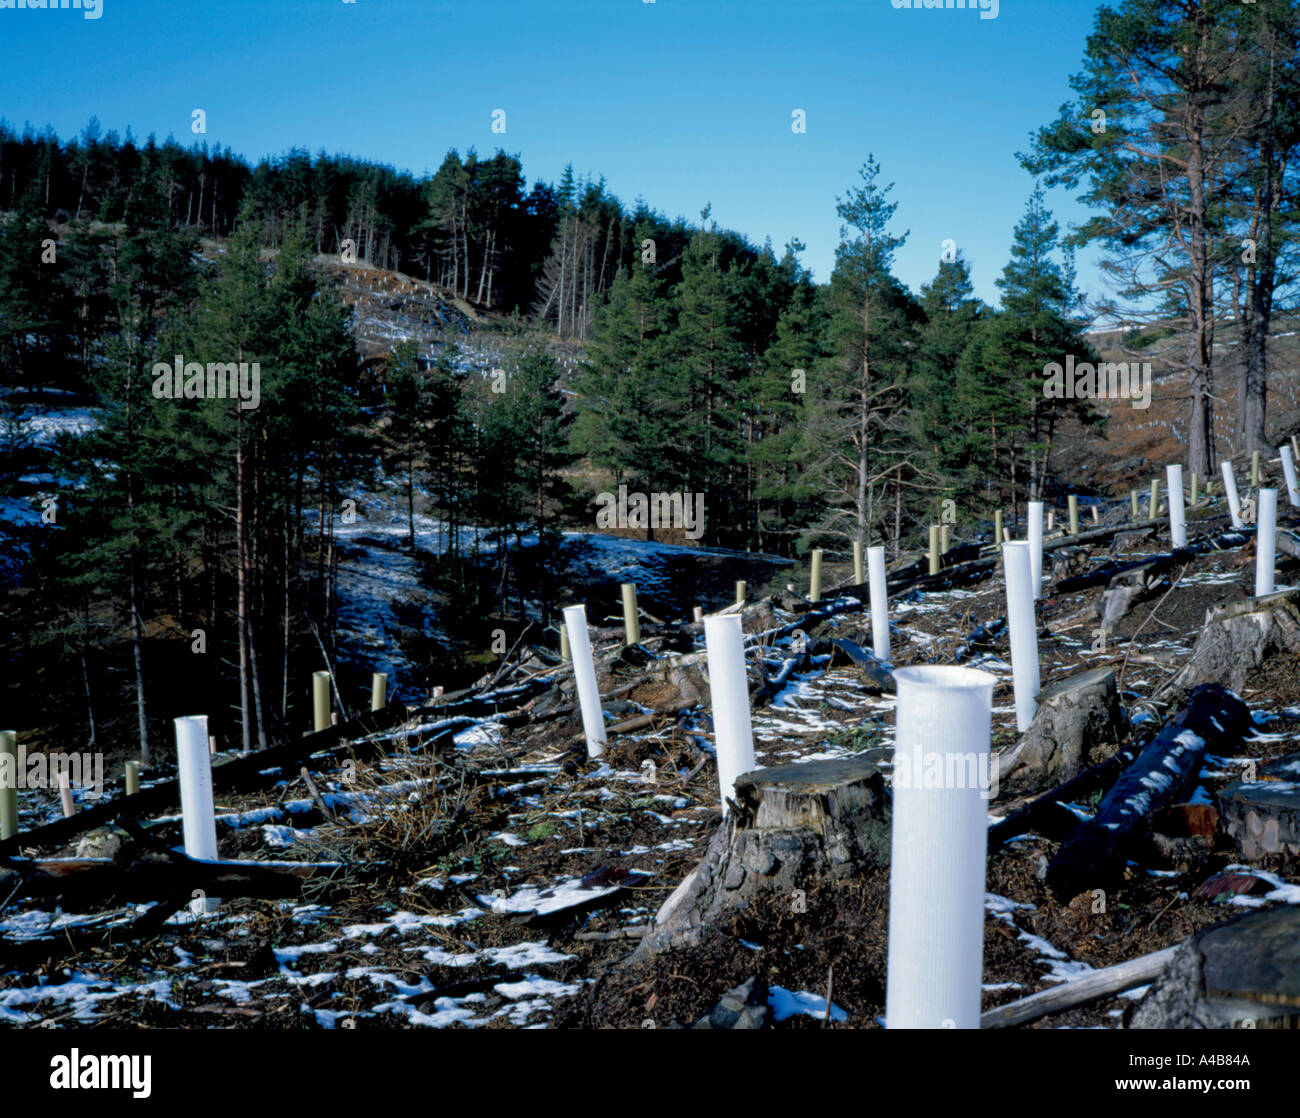 Newly planted deciduous trees in plastic tubes, with middle aged conifers beyond, Blanchland Moor near Hexham, Northumberland, - Stock Image